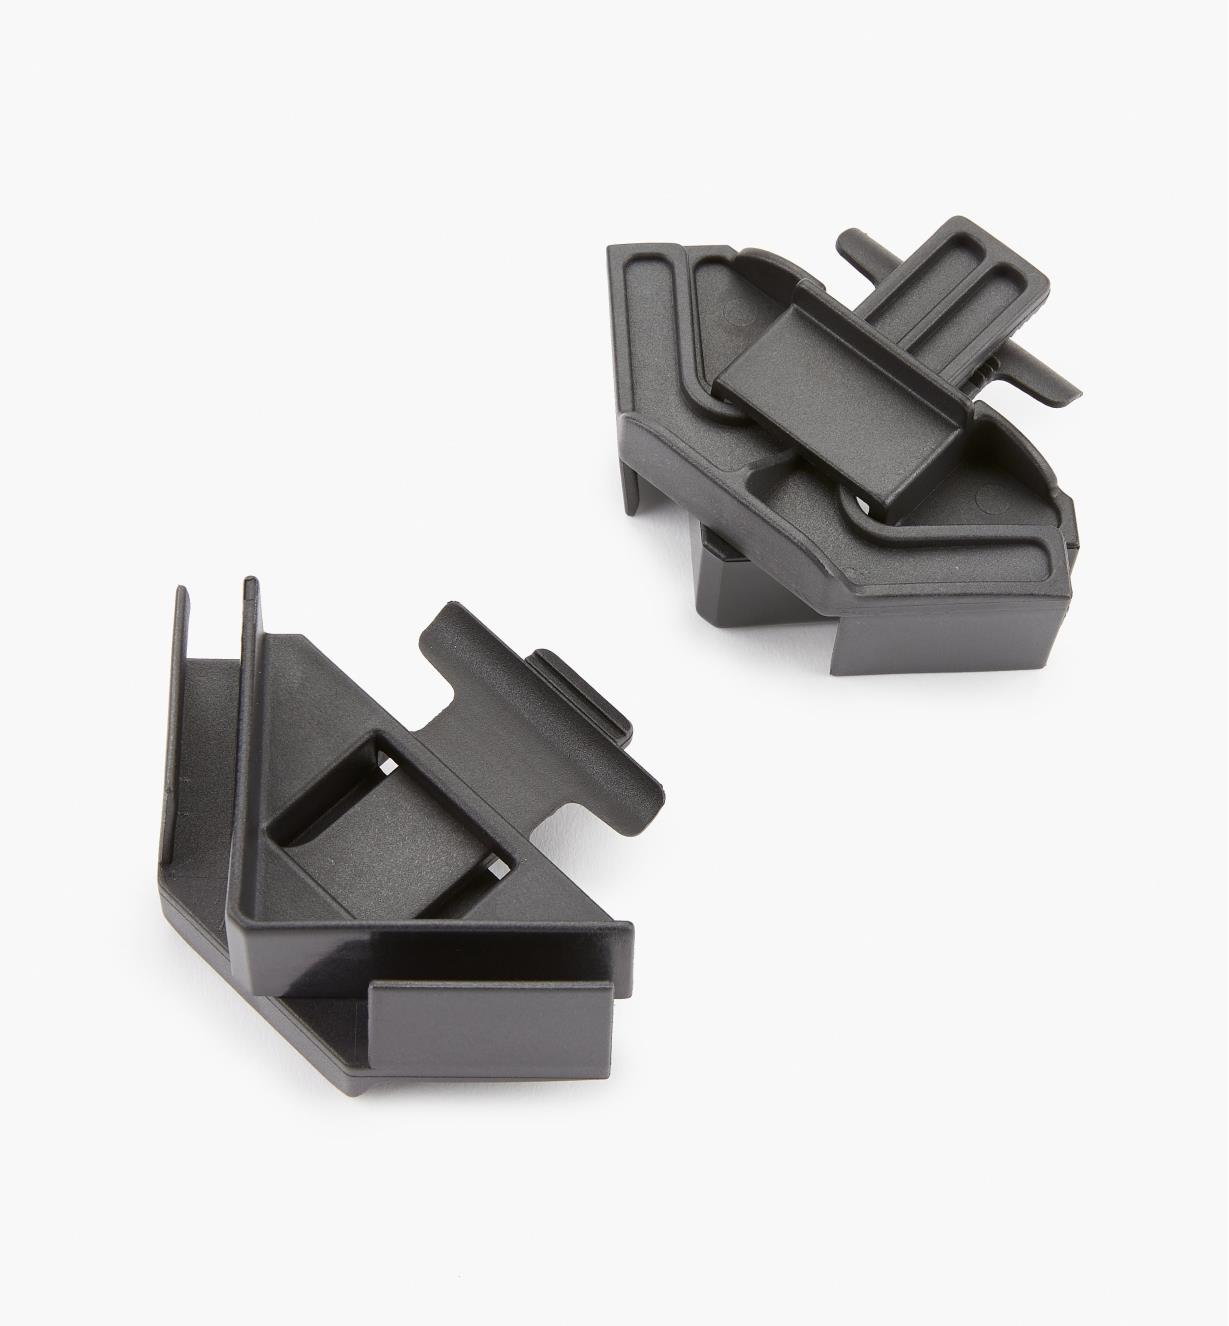 50K3801 -  Assembly Clamps, pair